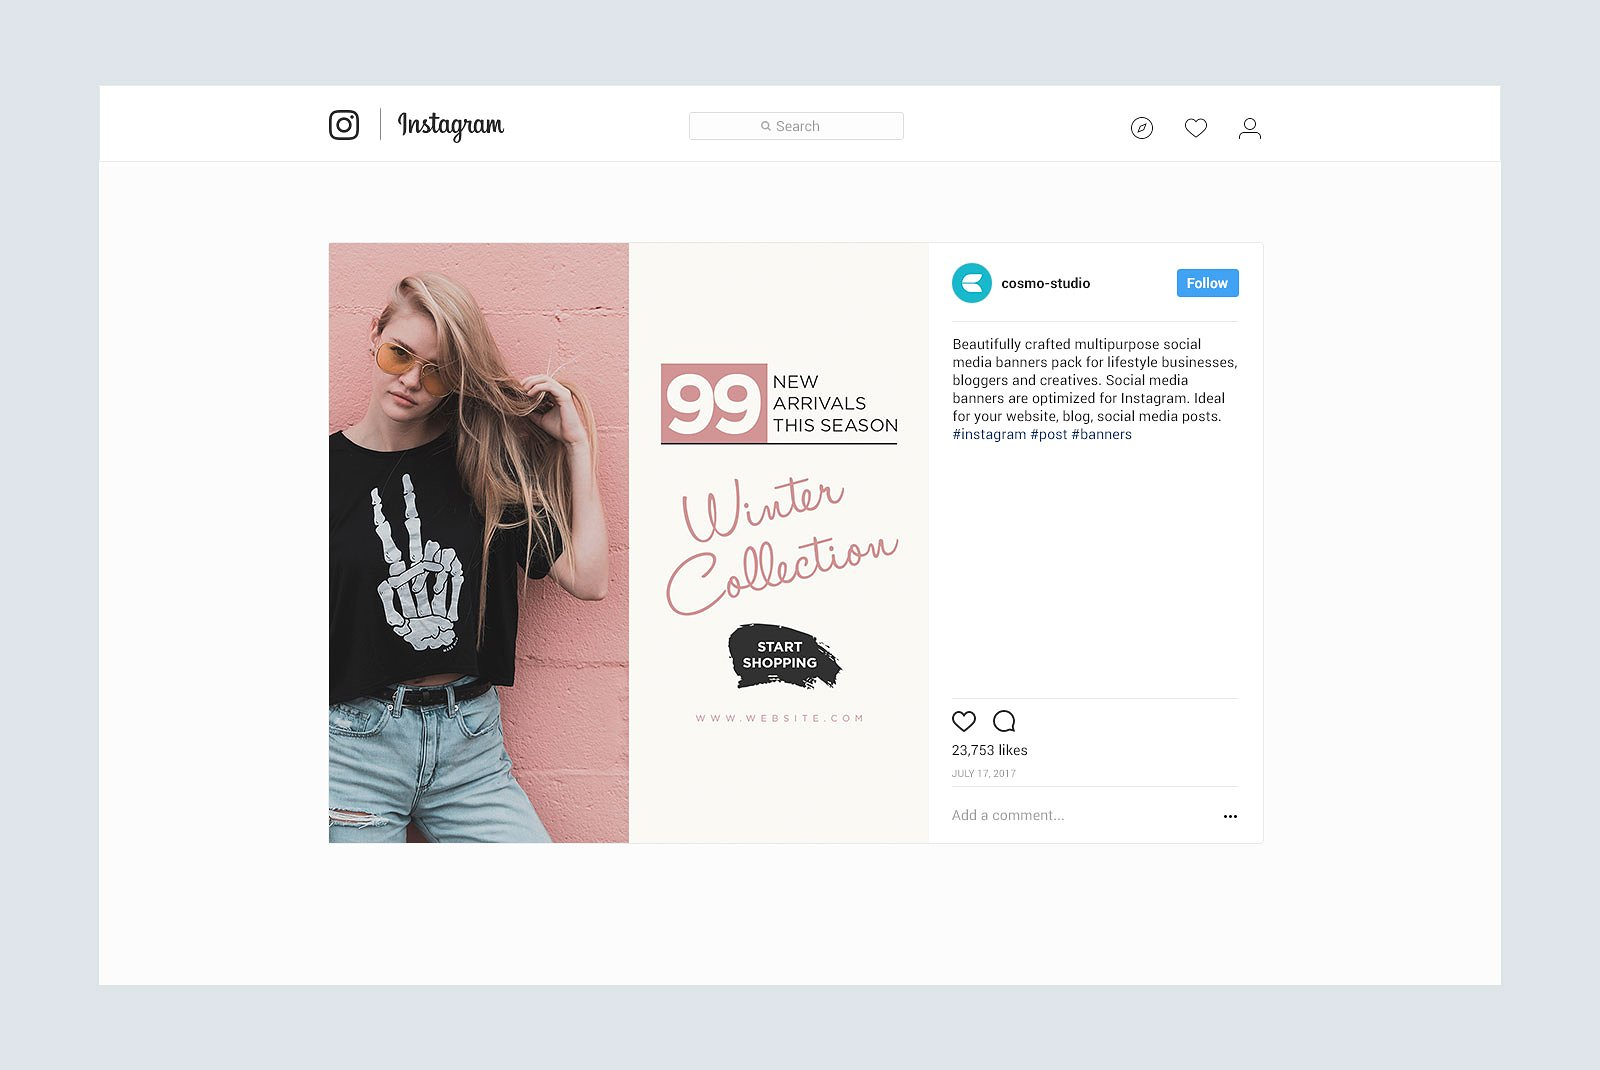 Gravity Instagram Pack Graphic Web Elements By wally6484 - Image 5